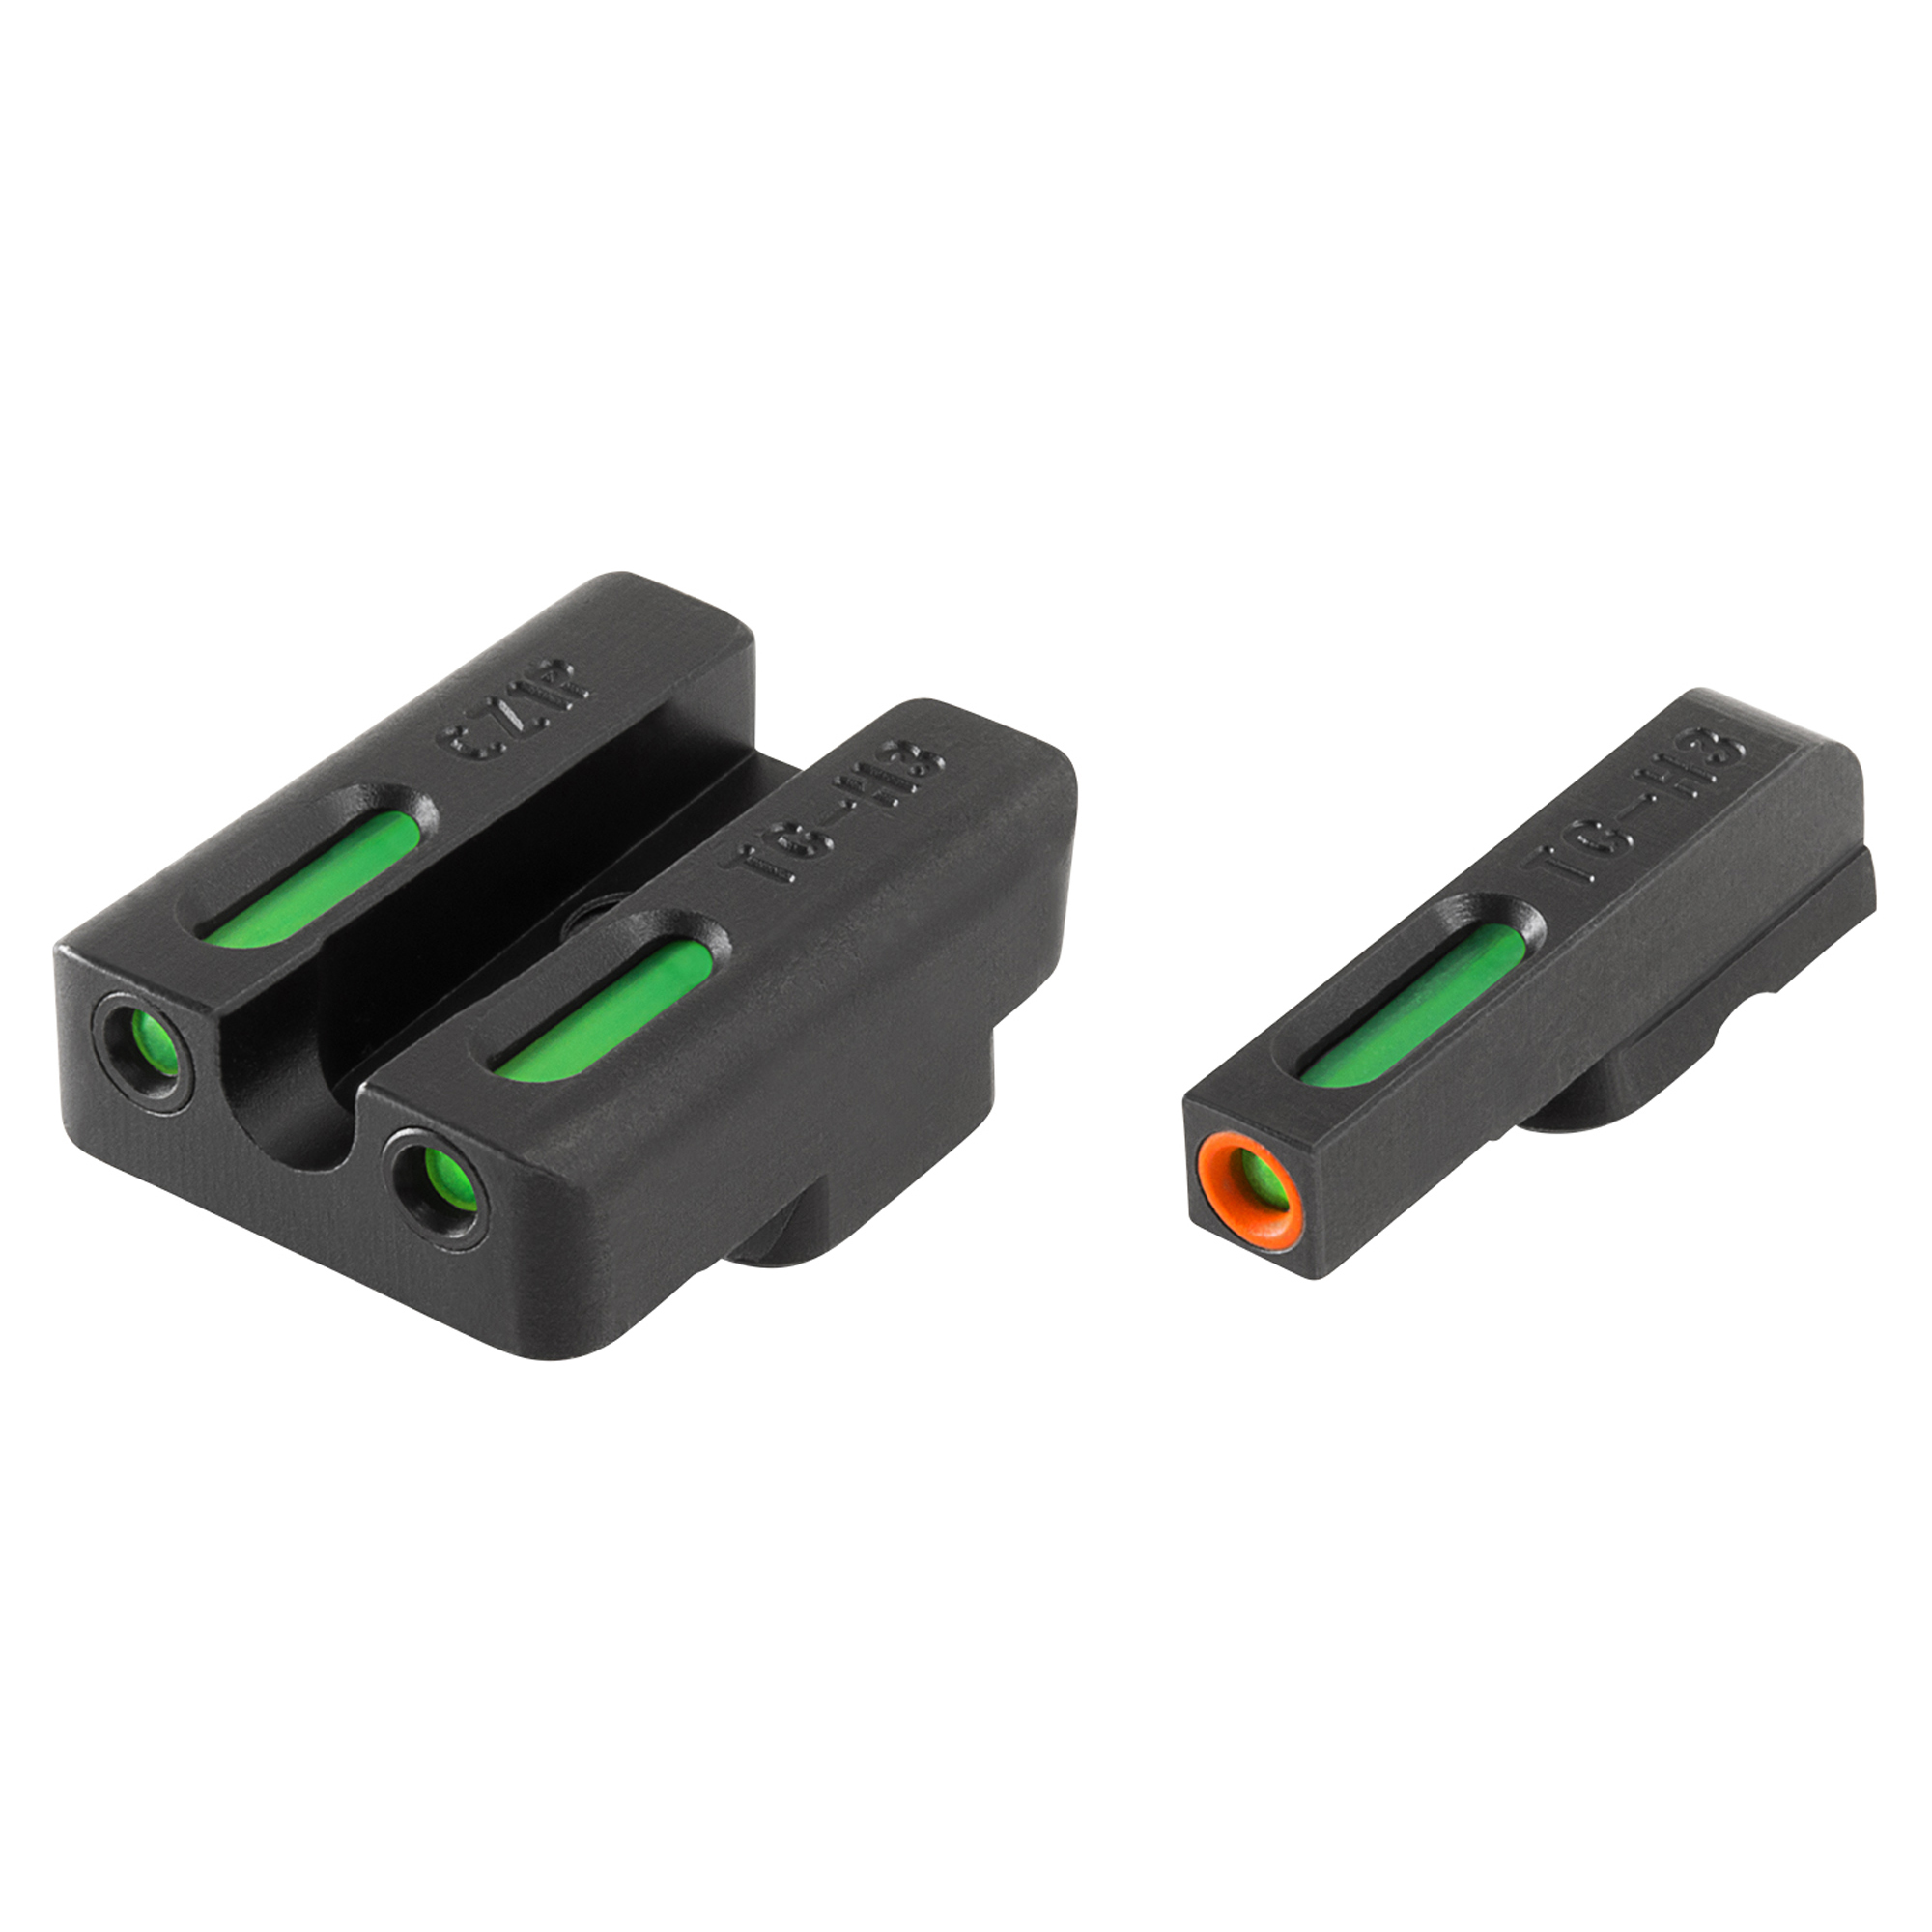 TruGlo Brite-Site TFX Pro For CZ 75 Series Green Rear Green With Orange Focus Lock Front Sight-The TFX CZ 75 Set Pro ORN Handgun Sight provides a longer sight radius for tighter groupings. The aiming elements are encased inside a virtually indestructible chemical and shock resistant capsule. All of the CNC-machined steel is protected with a rust proof Fortress Finish. There is even a highly visible white ring surrounding the front fiber to make it even more visible.